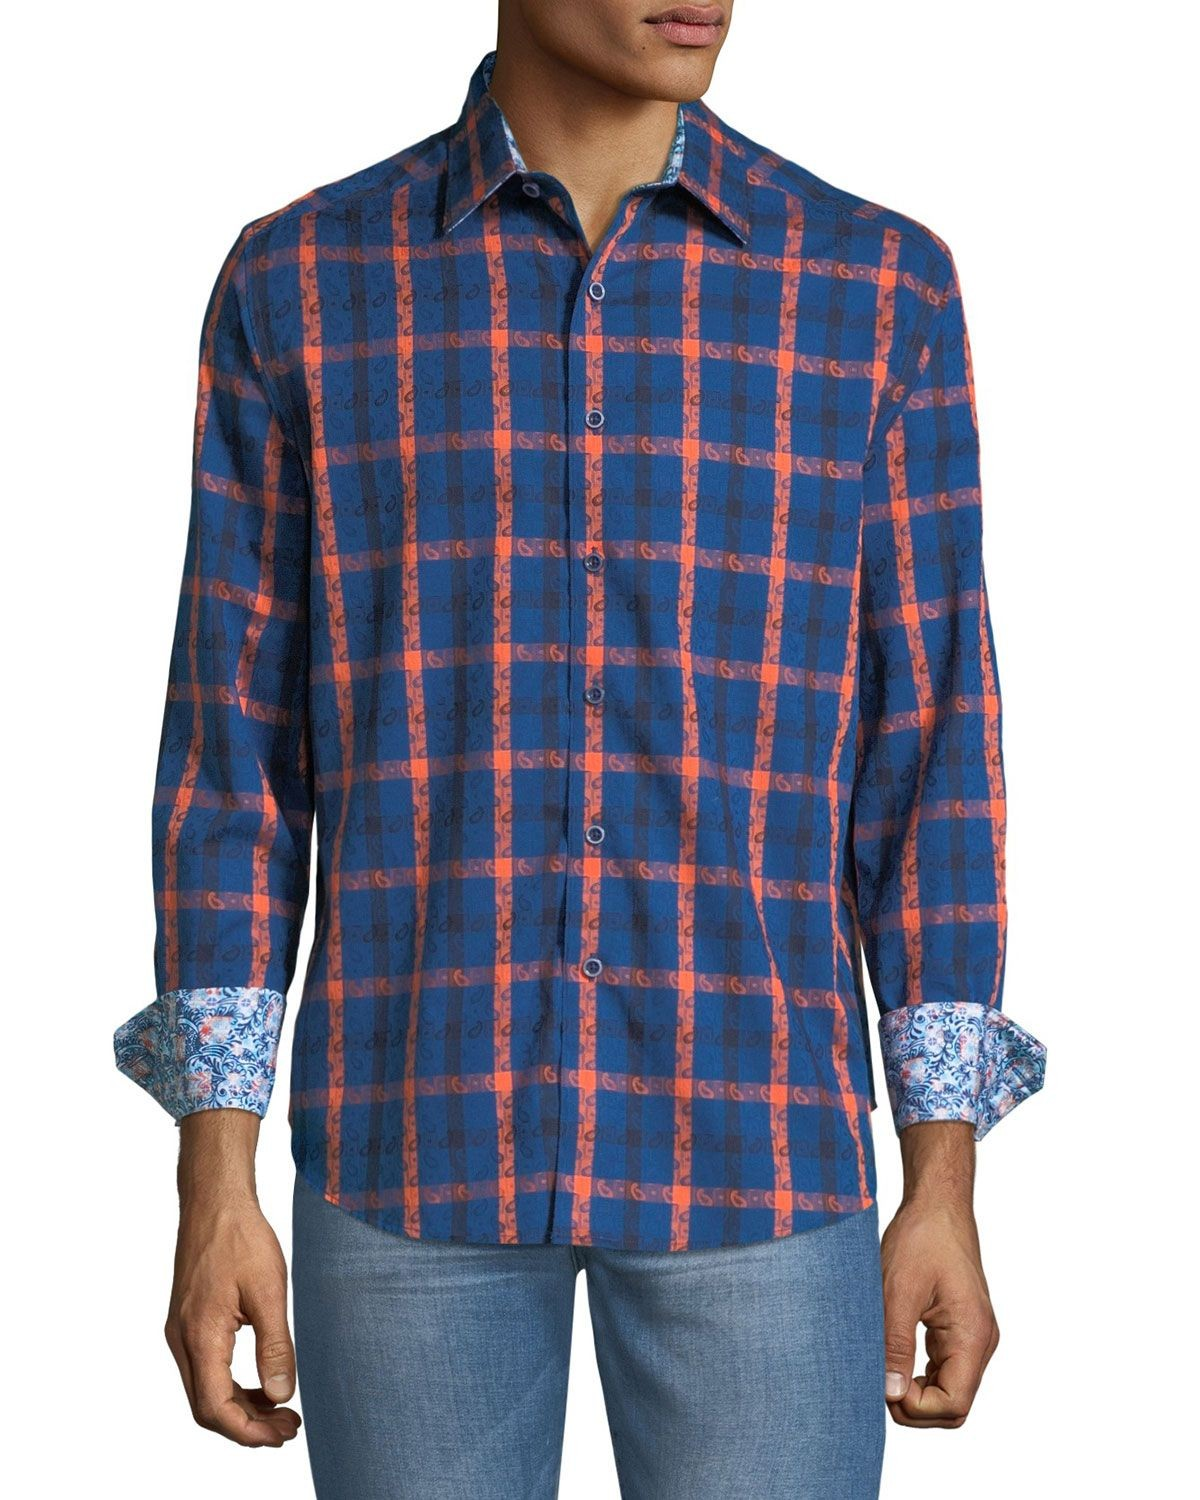 Robert Graham Dadebrook Shirt Medium